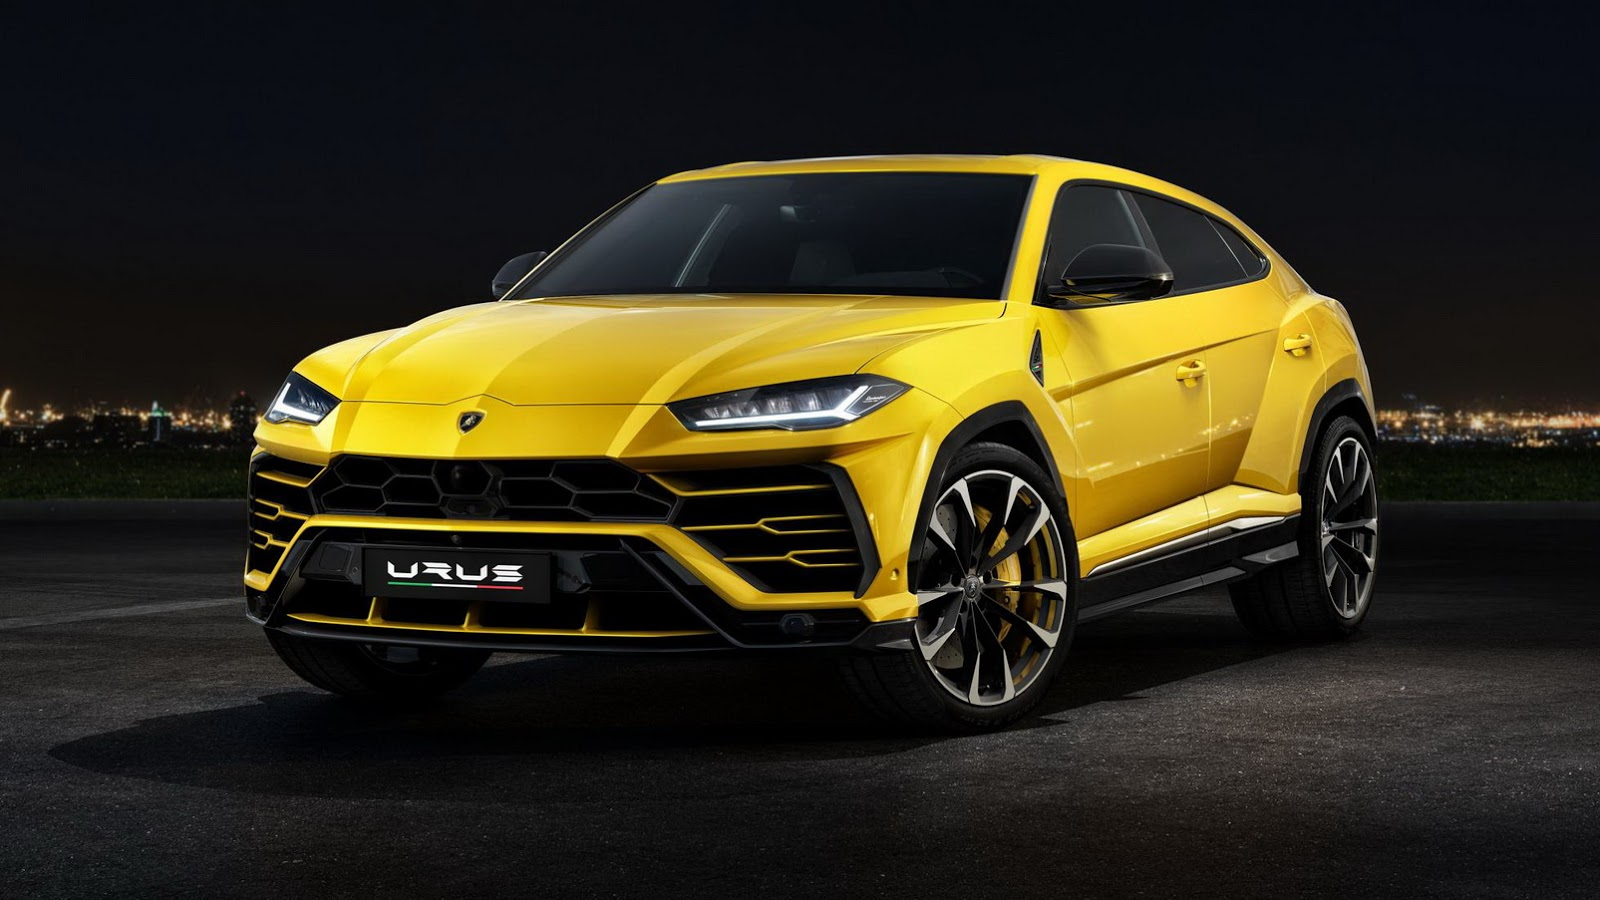 Watch The Lamborghini Urus Debut Live